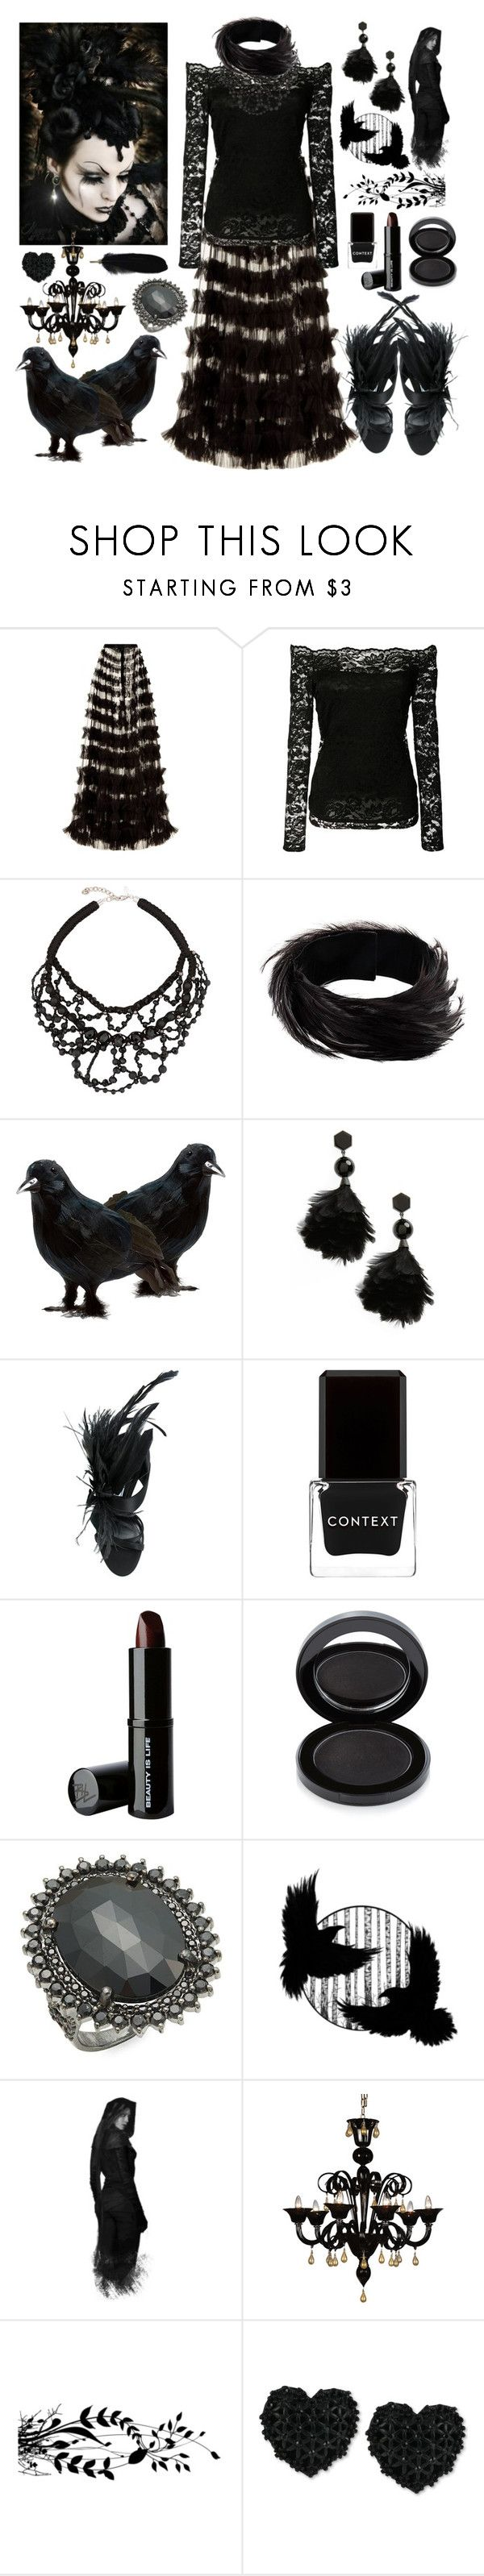 """Morrigan-Inspired Witch"" by sarina-noel ❤ liked on Polyvore featuring Rachel Gilbert, L'Agence, Megan Park, Dries Van Noten, Tory Burch, Prada, Context, Beauty Is Life, Lipstick Queen and Bavna"